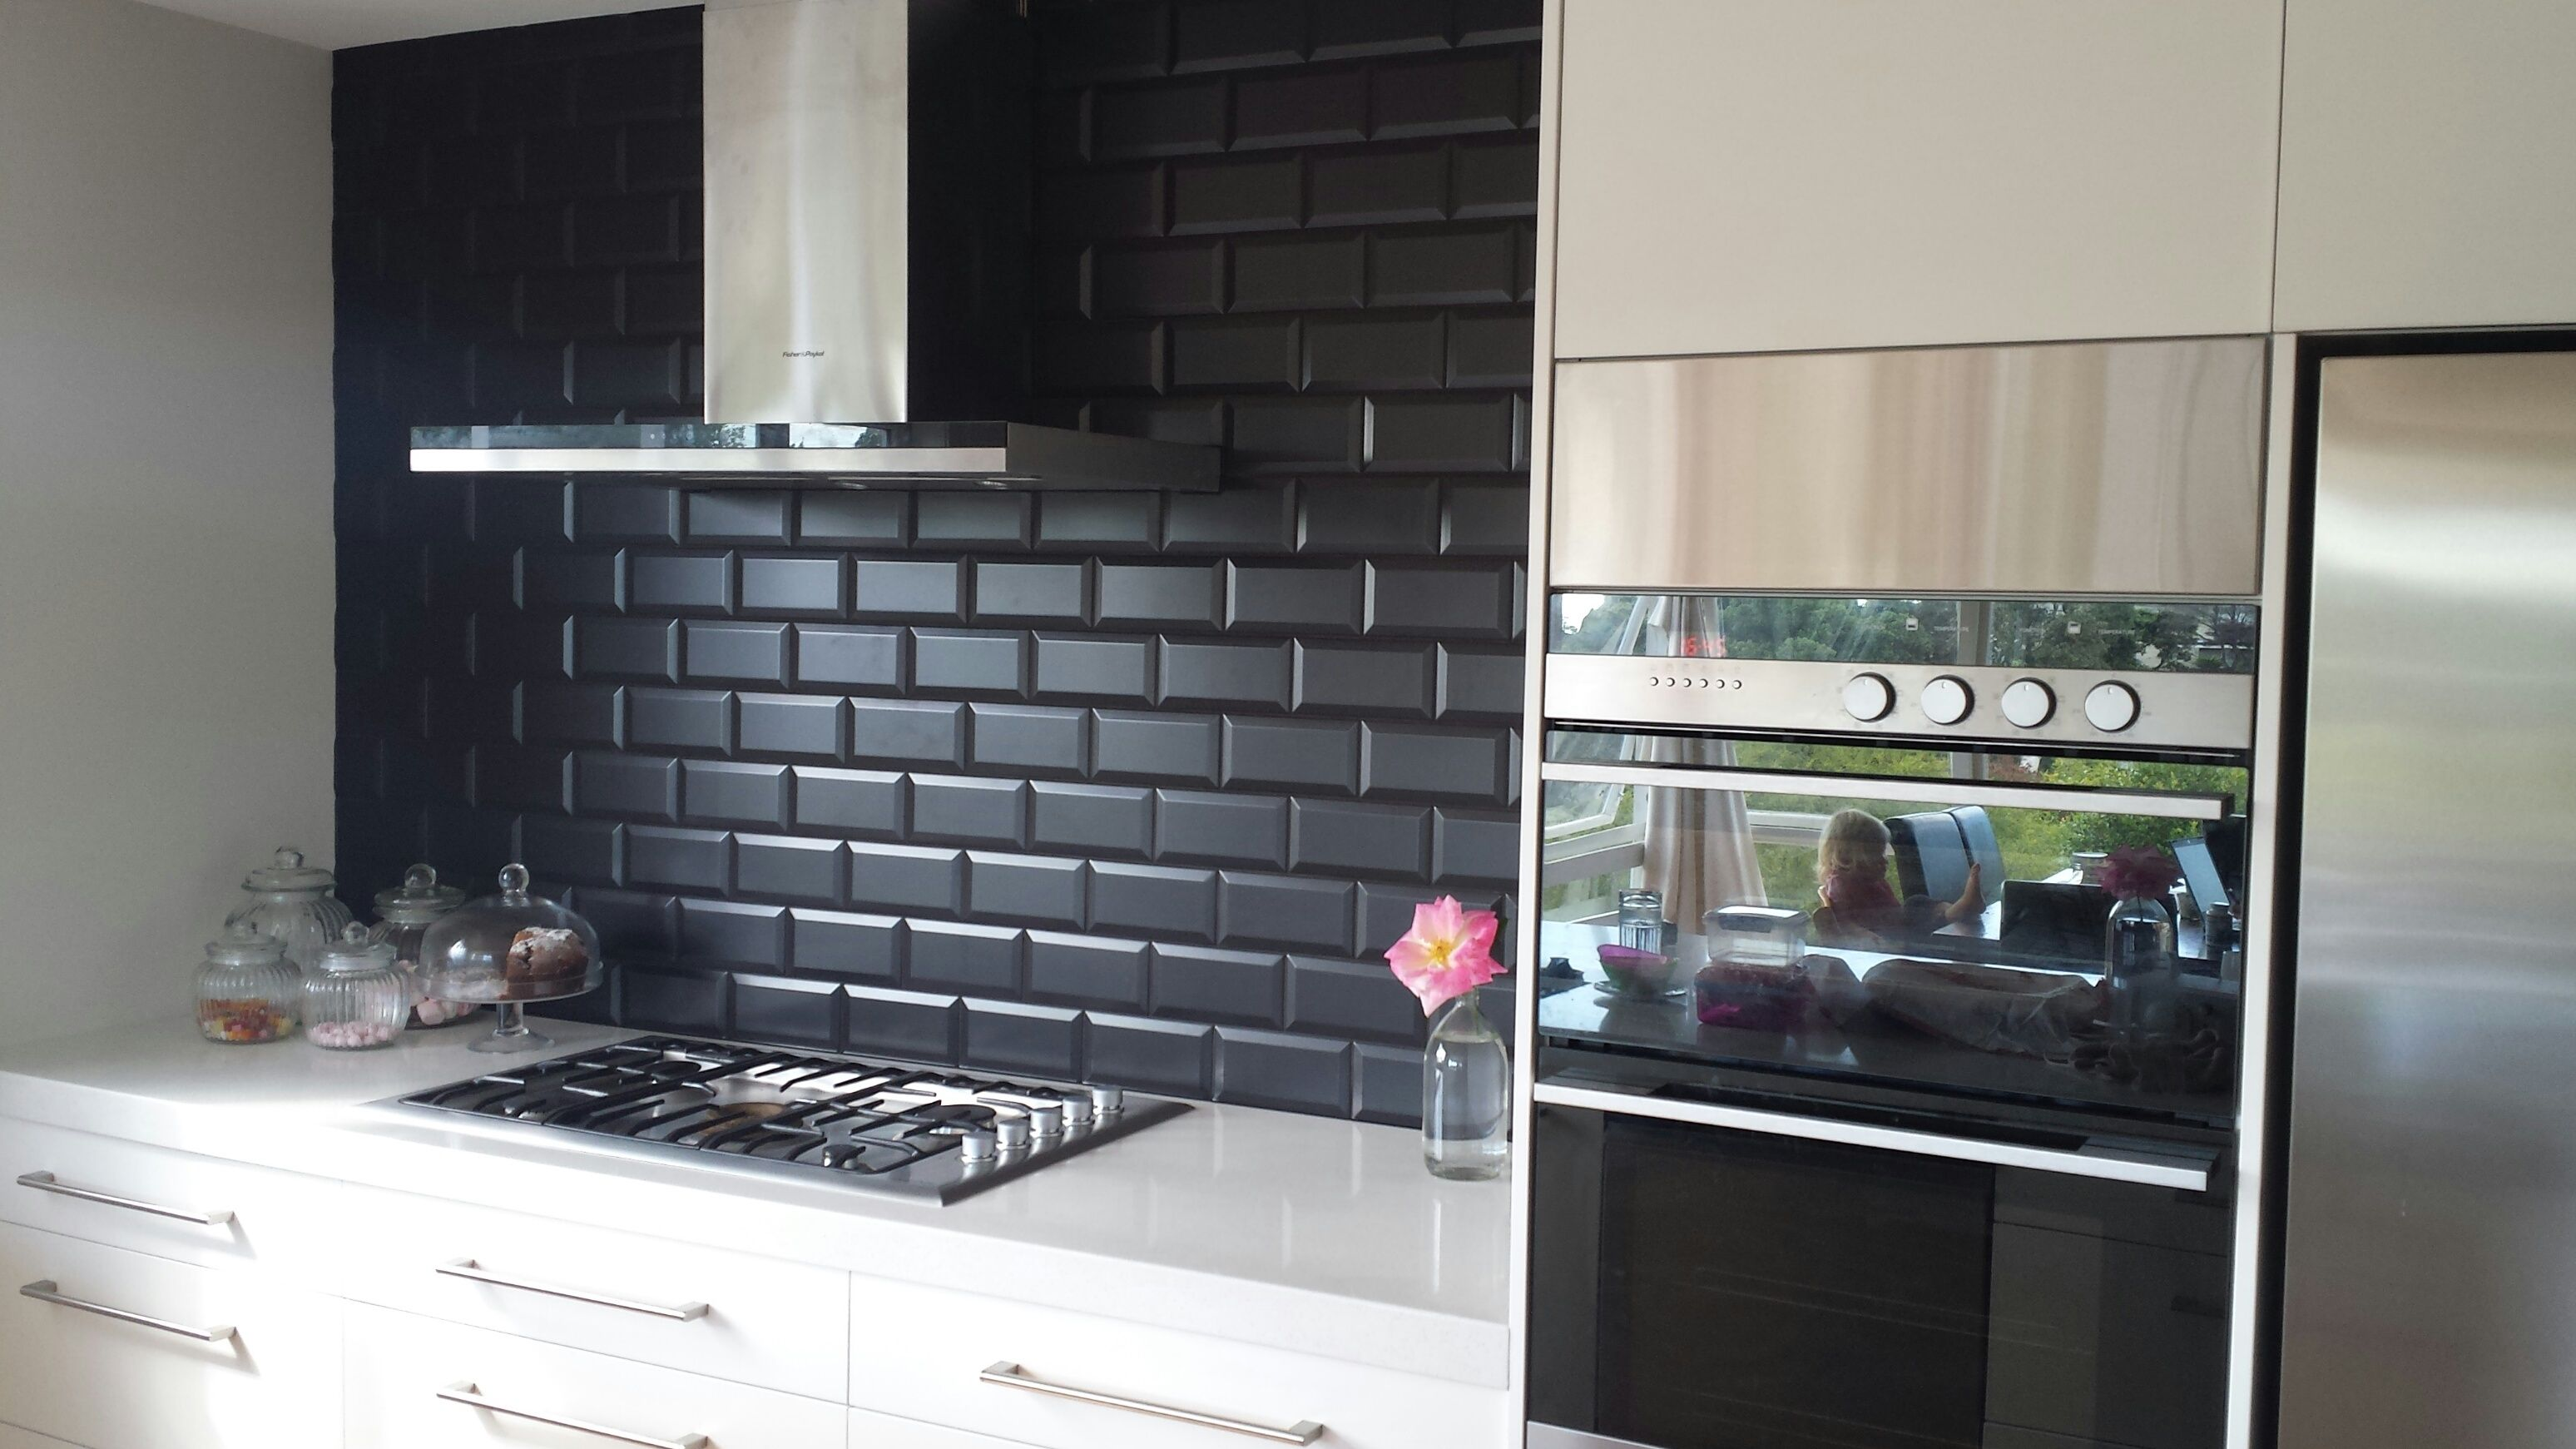 Black Matte Subway Tile Google Search Black Subway Tiles Modern Kitchen Dark Kitchen Floors